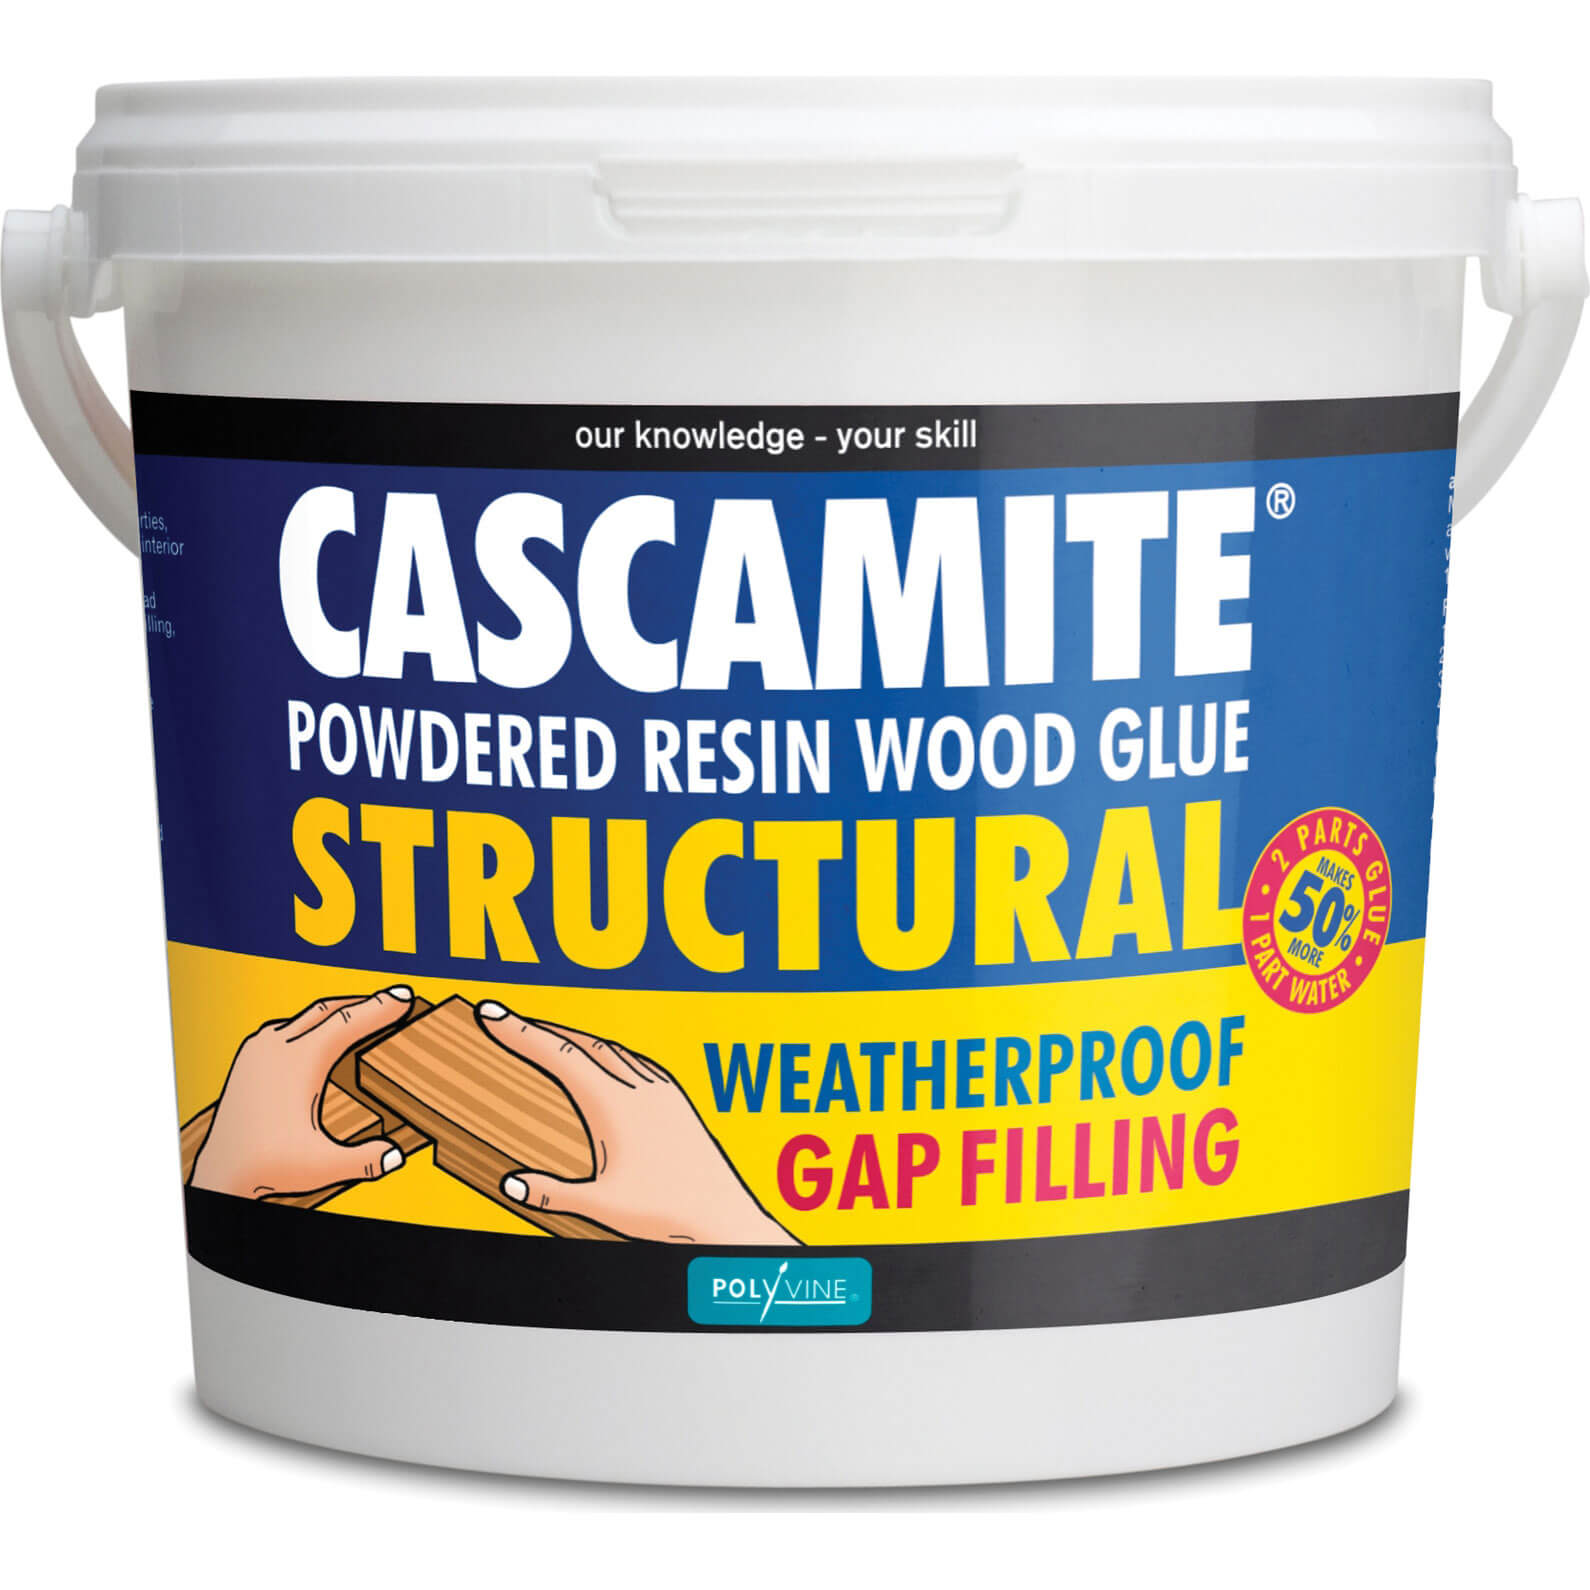 Image of Humbrol Cascamite One Shot Wood Adhesive 1.5kg